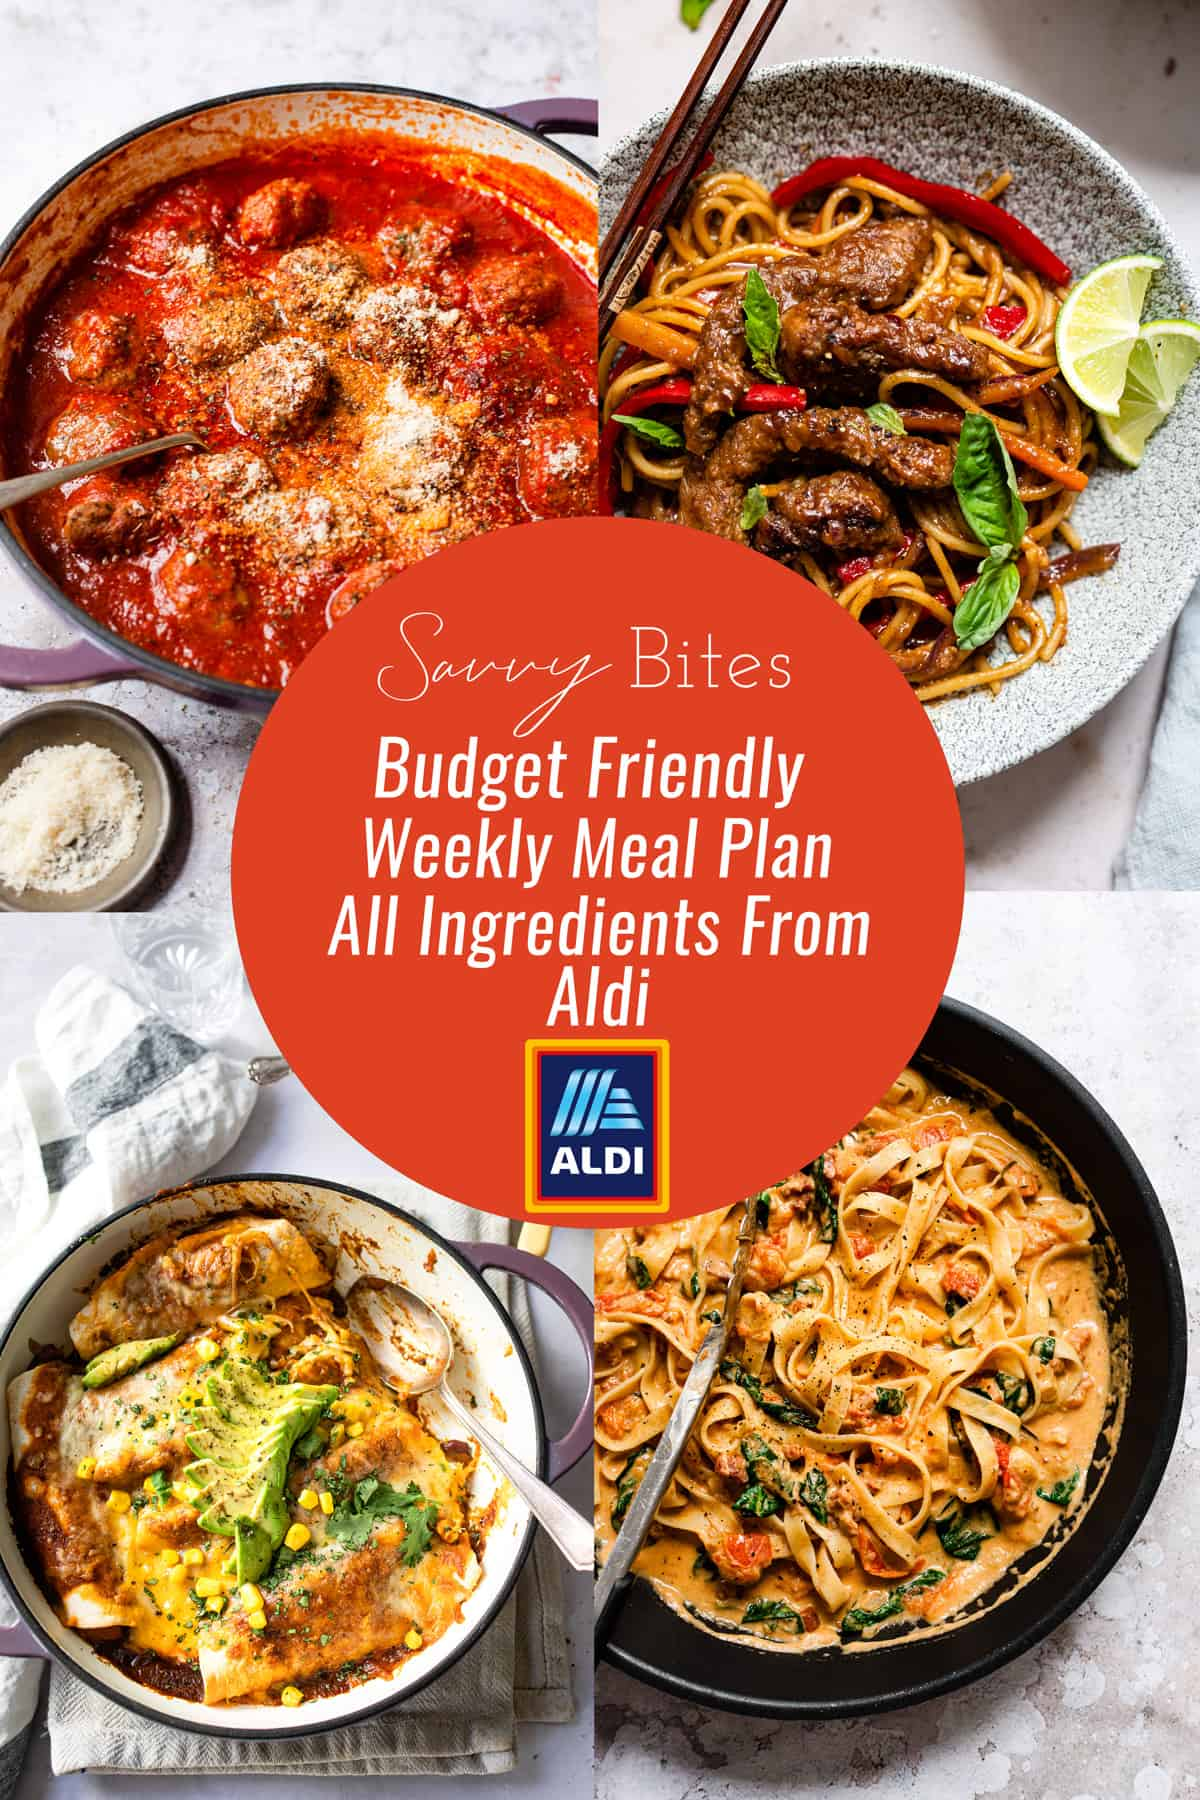 Aldi budget meal plan photo collage. Budget recipes